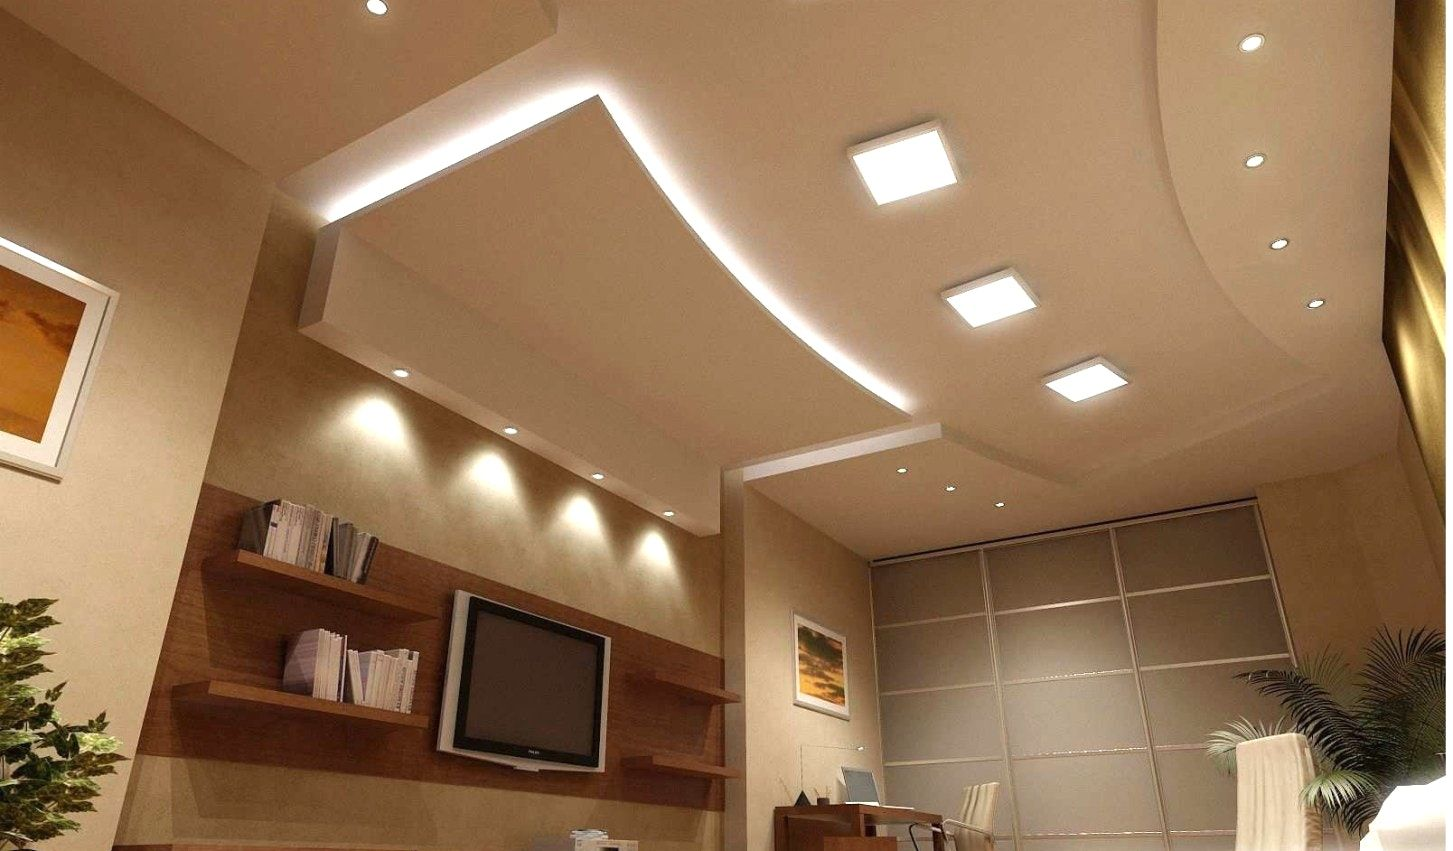 4 Drop Ceiling Lighting Options Ceiling Design Modern False Ceiling Design Bedroom Ceiling Light